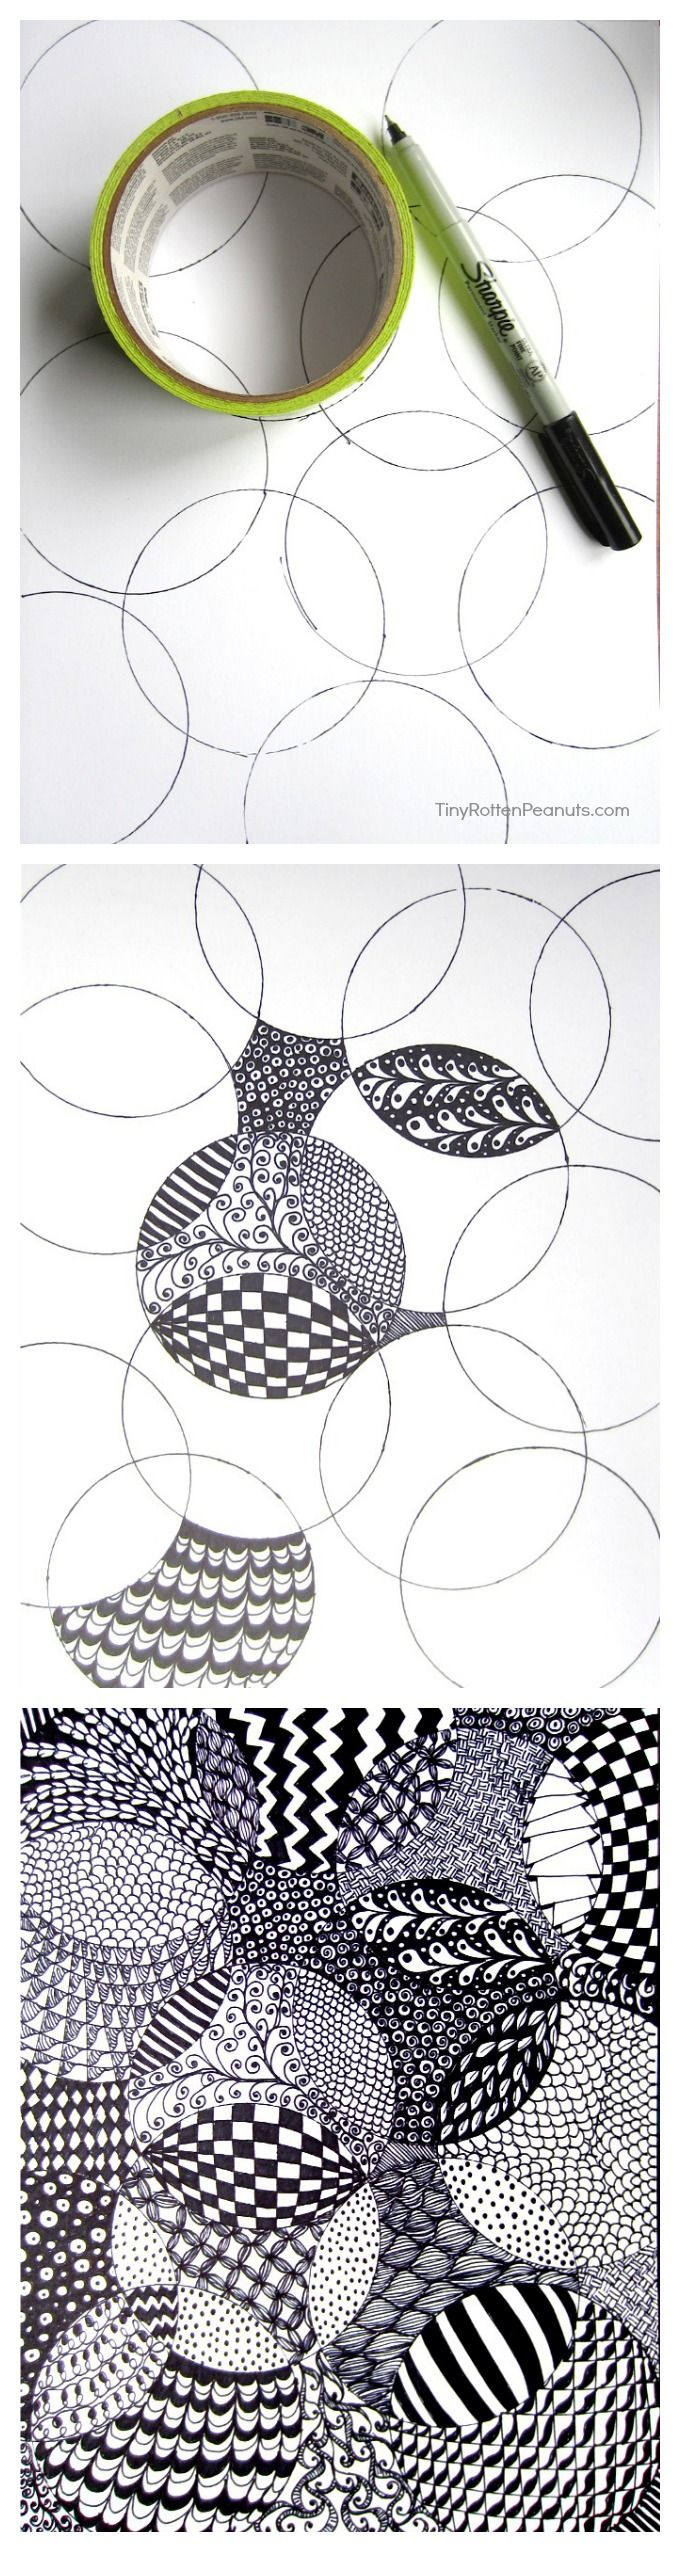 TOTALLY EASY ZENTANGLE 141 best Kidu0027s Activities